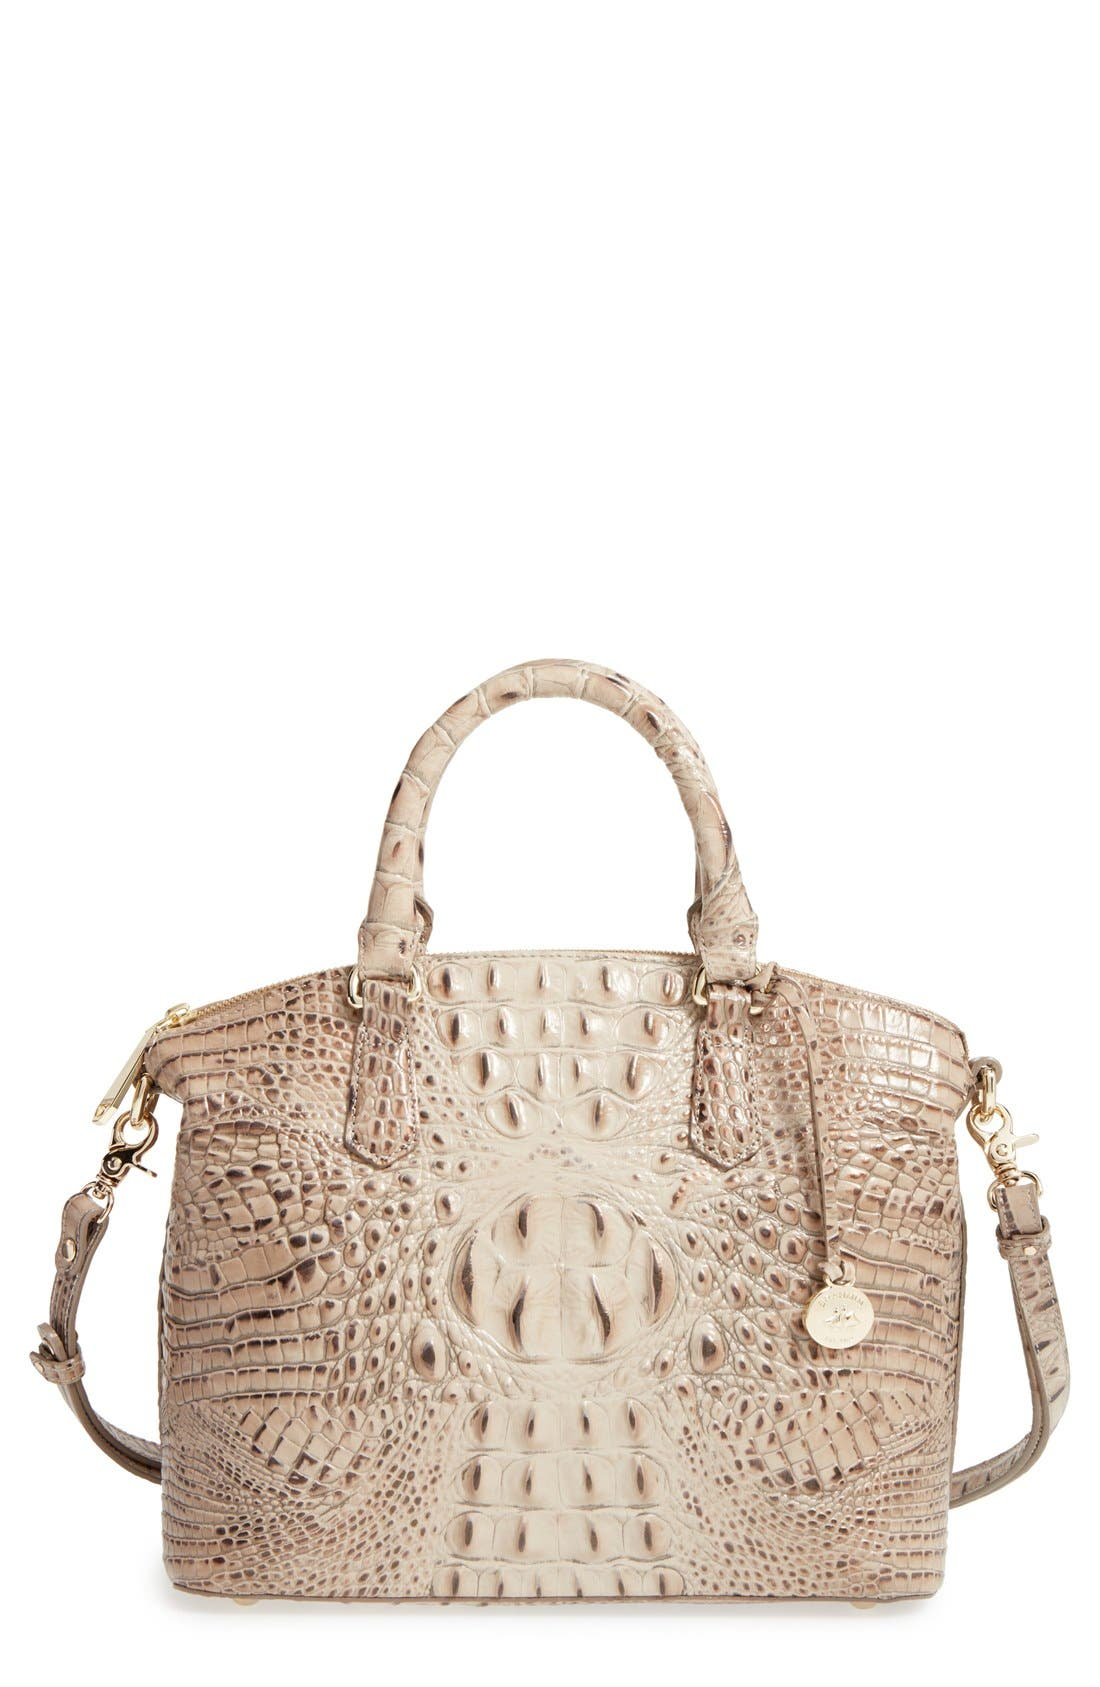 'Medium Duxbury' Croc Embossed Leather Satchel,                             Main thumbnail 12, color,